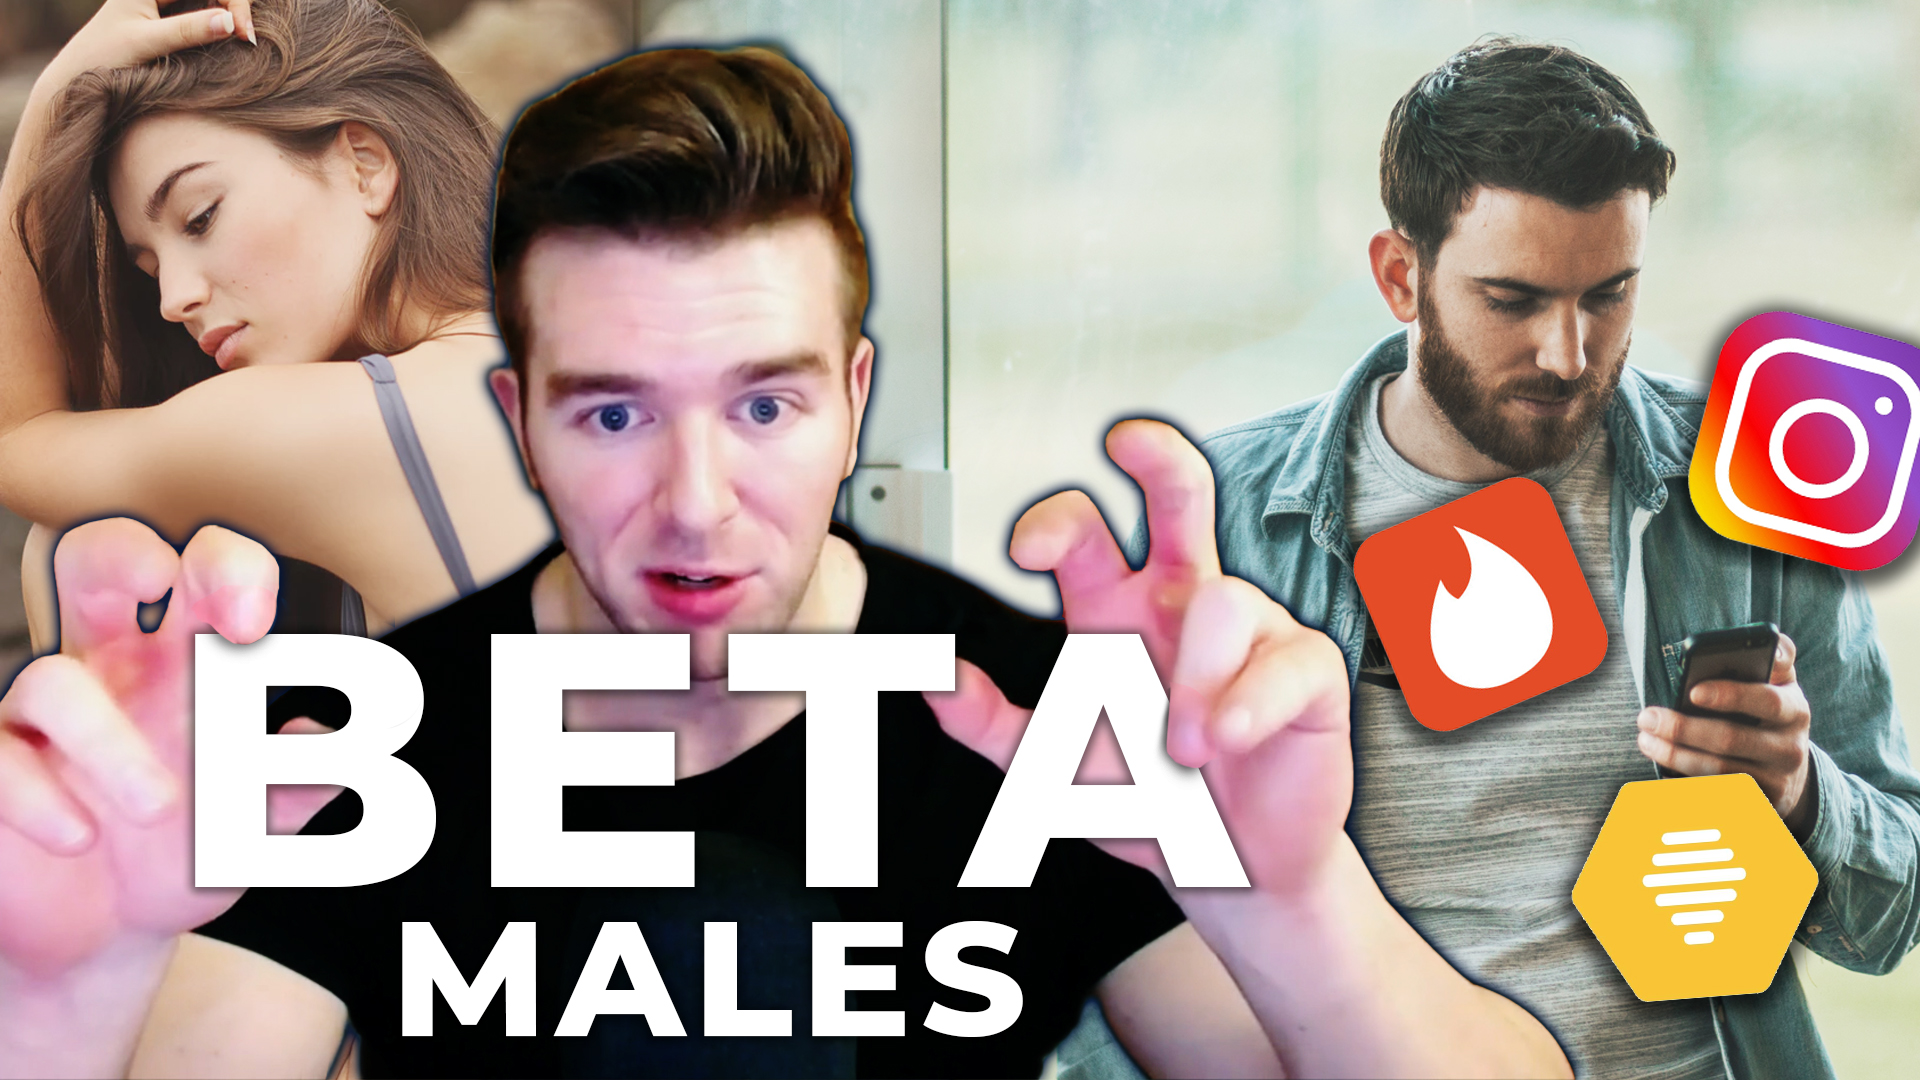 Beta Males - The Reason Why There's Less Competition Than Ever In The Dating Pool